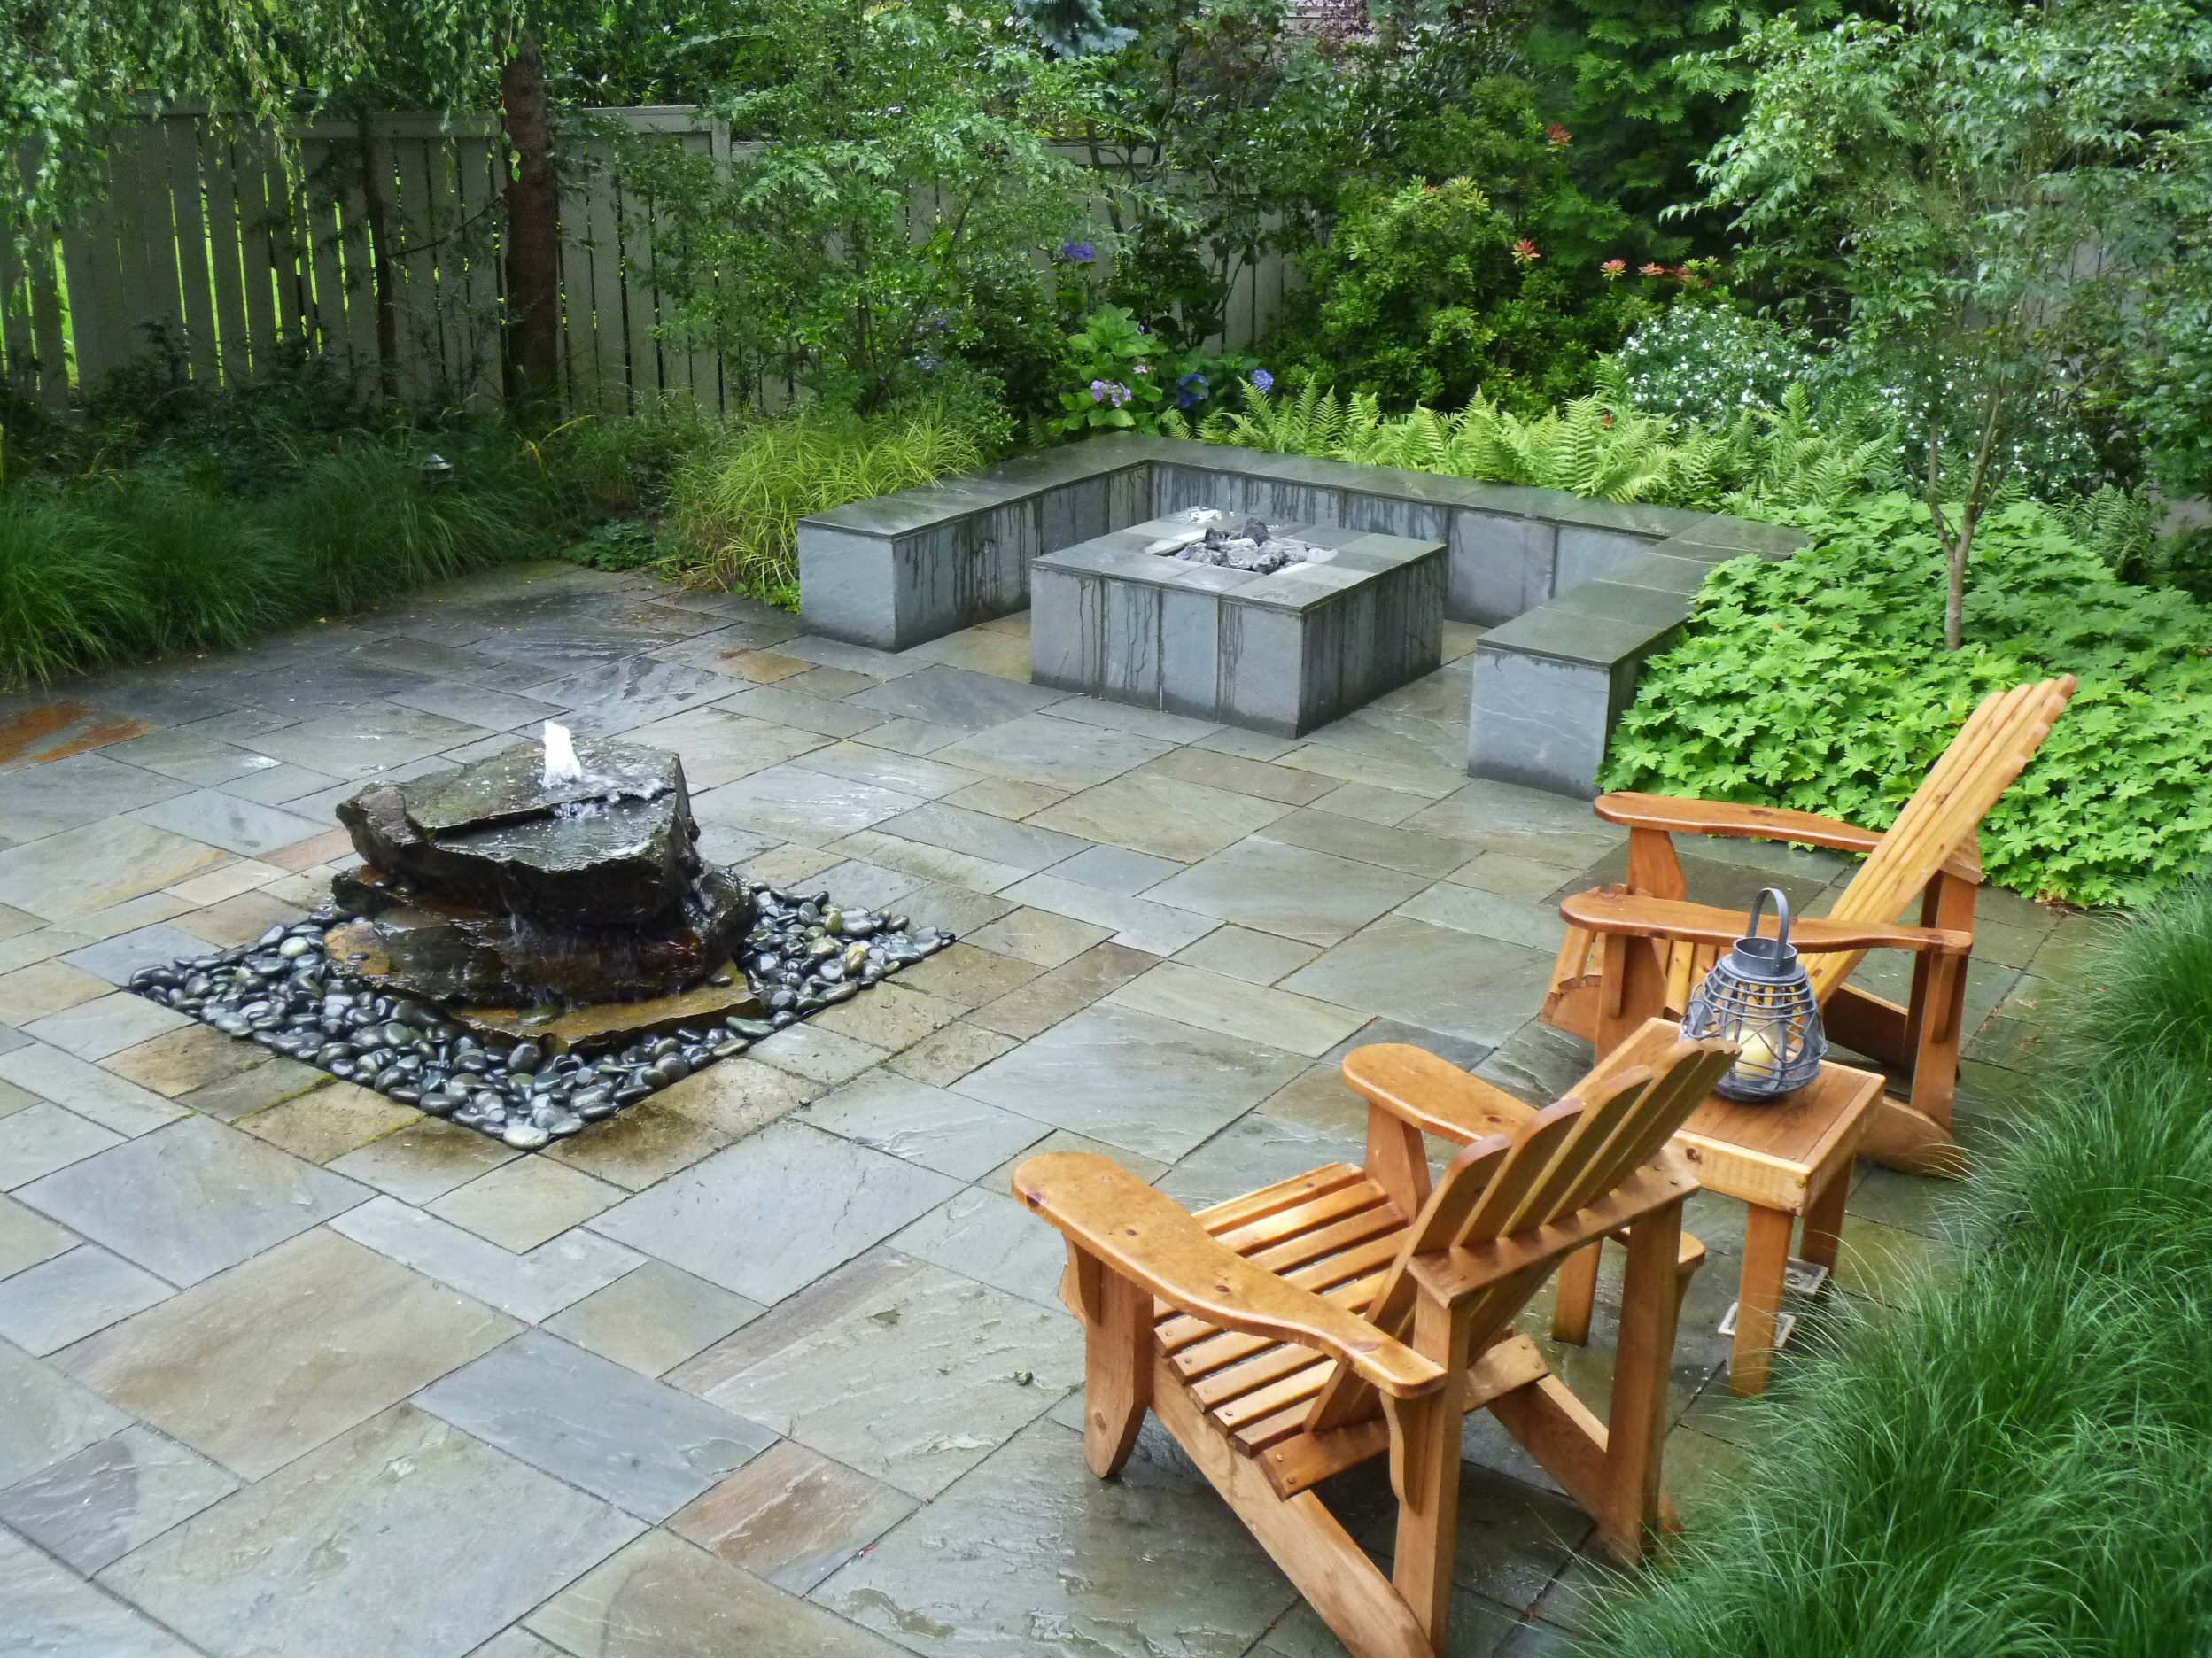 6c645b496b8026e0a10586dd40237f4a Top Result 50 Awesome Modern Outdoor Fireplace Picture 2018 Gst3